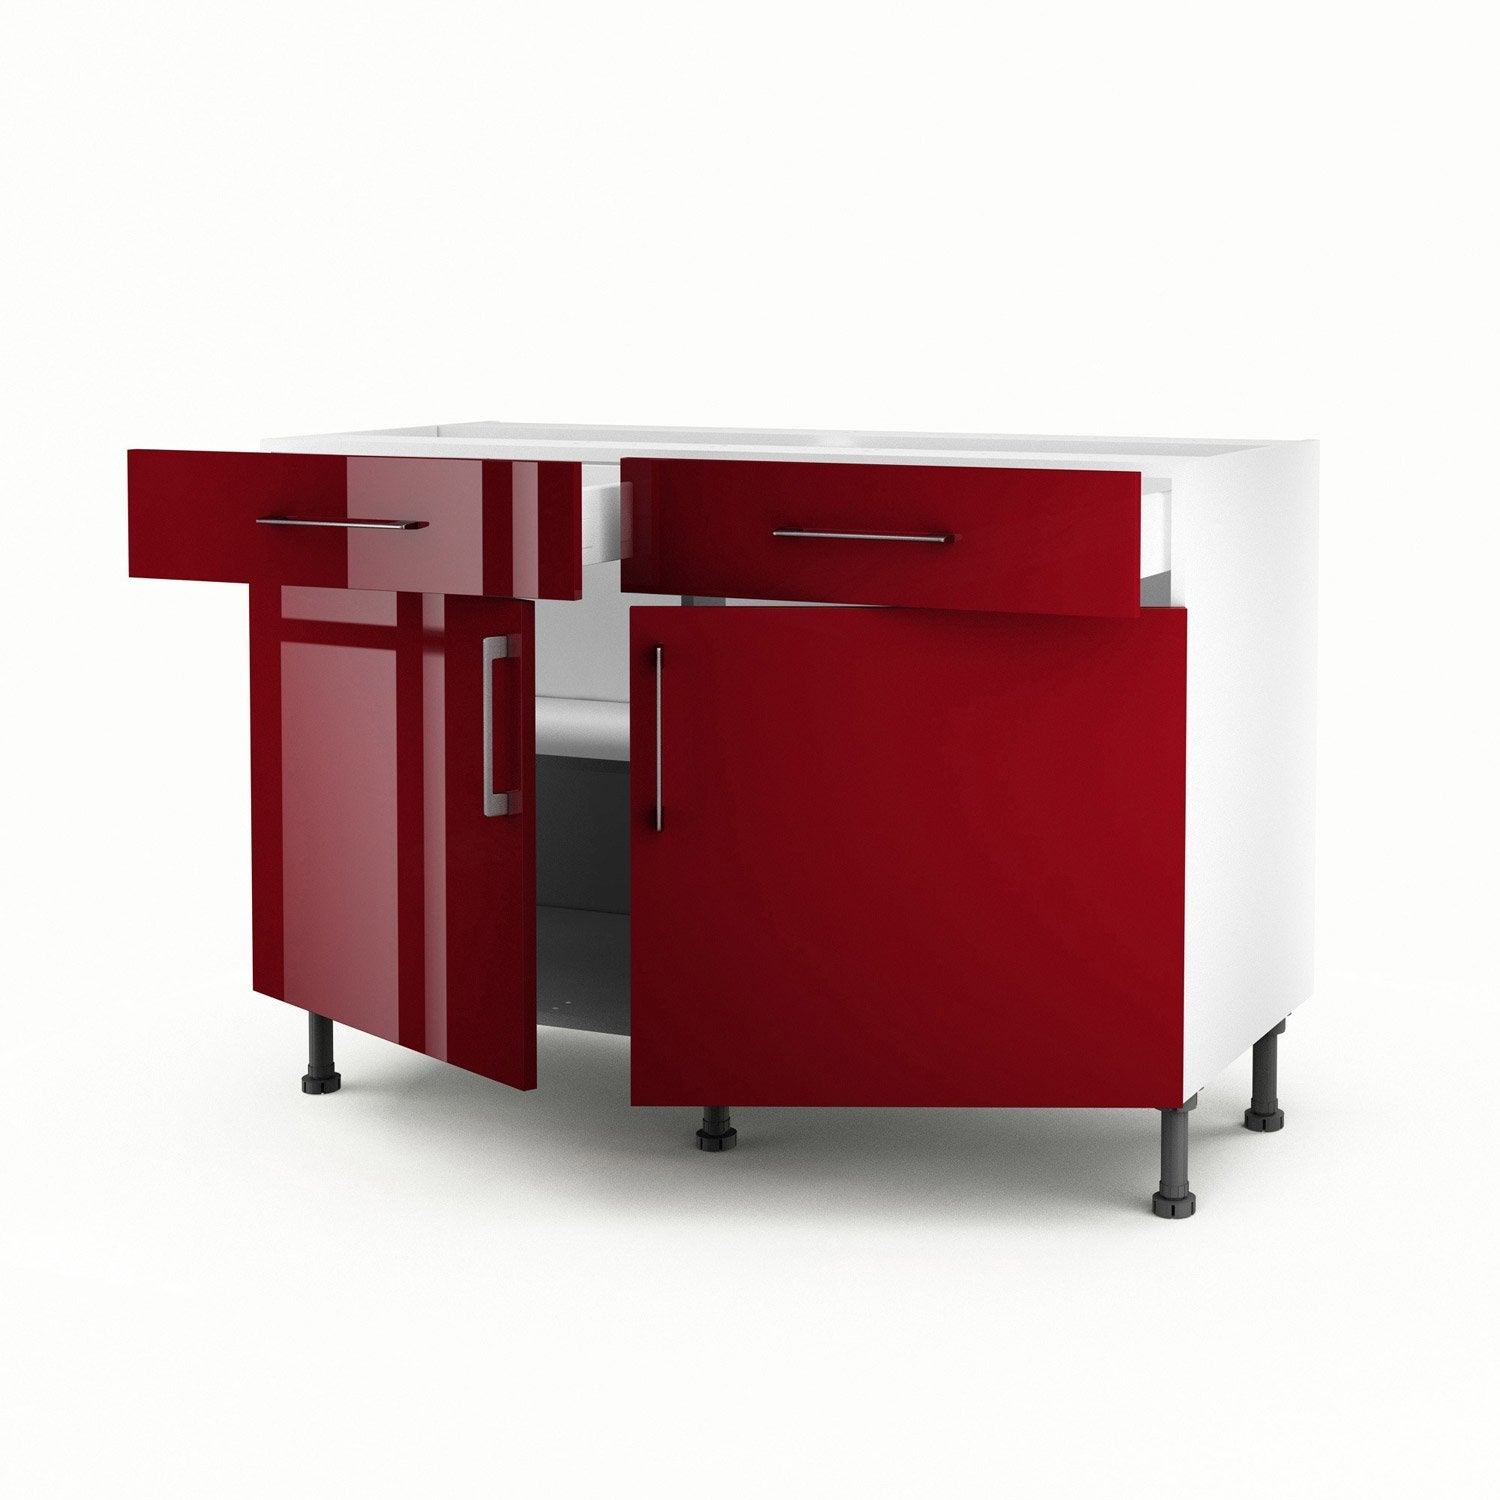 Meuble de cuisine bas rouge 2 portes 2 tiroirs griotte h for Portes elements cuisine leroy merlin